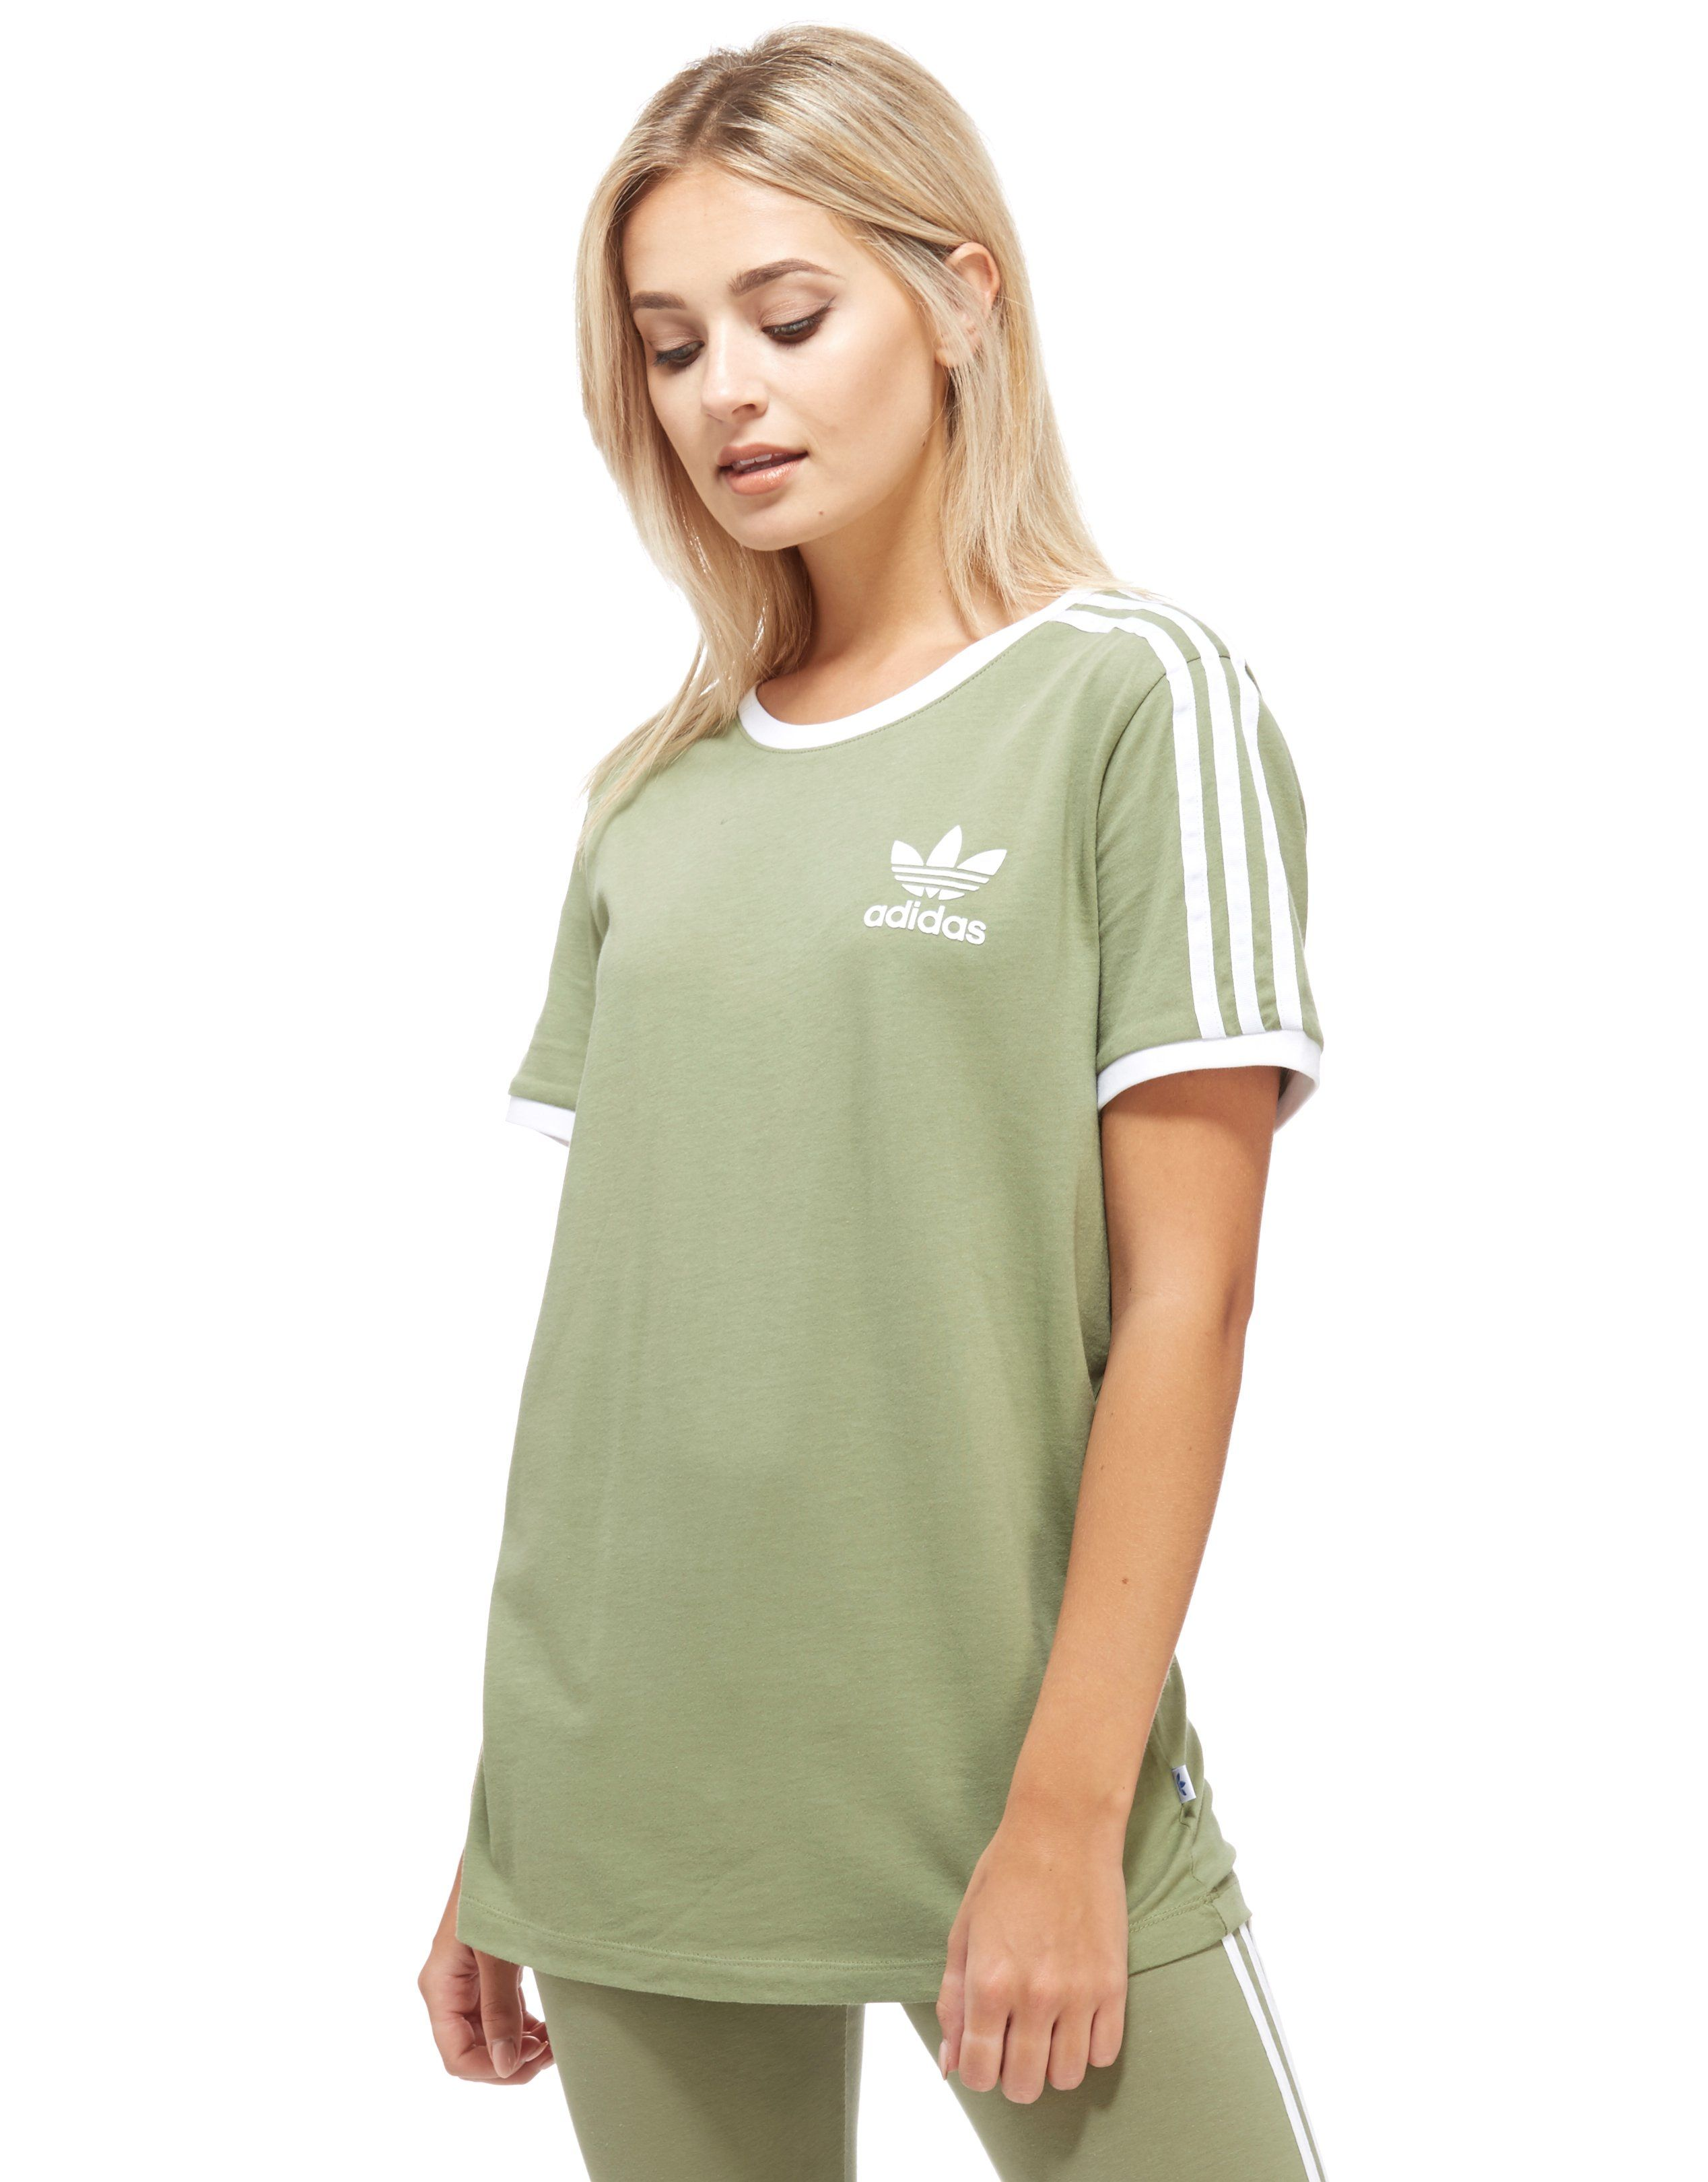 adidas originals california t shirt jd sports. Black Bedroom Furniture Sets. Home Design Ideas